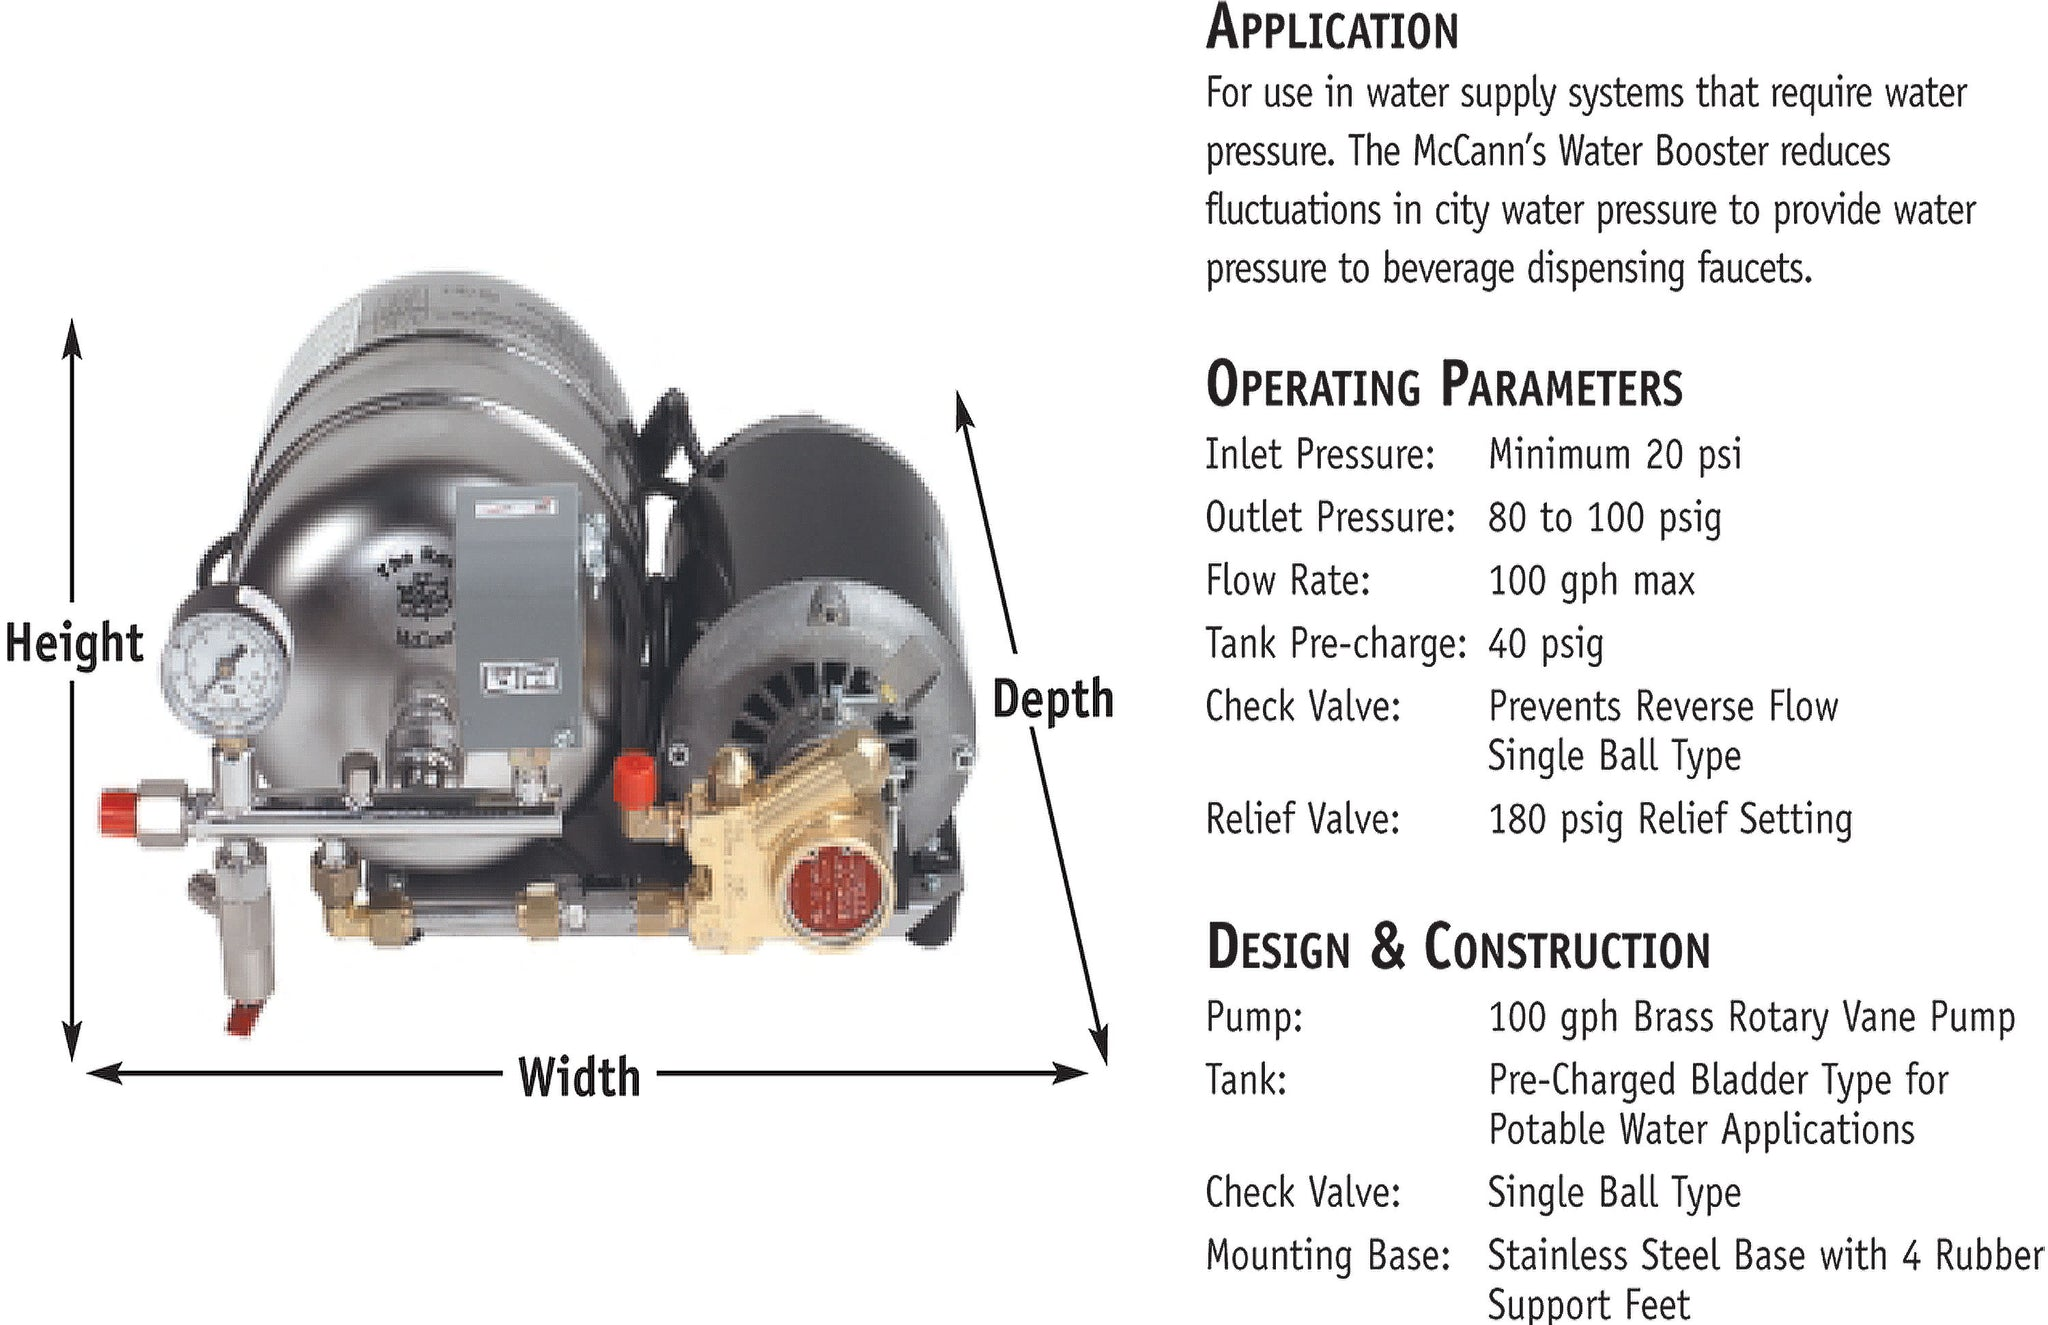 McCANN 2 & 4.4 GALLON WATER BOOSTER SYSTEM